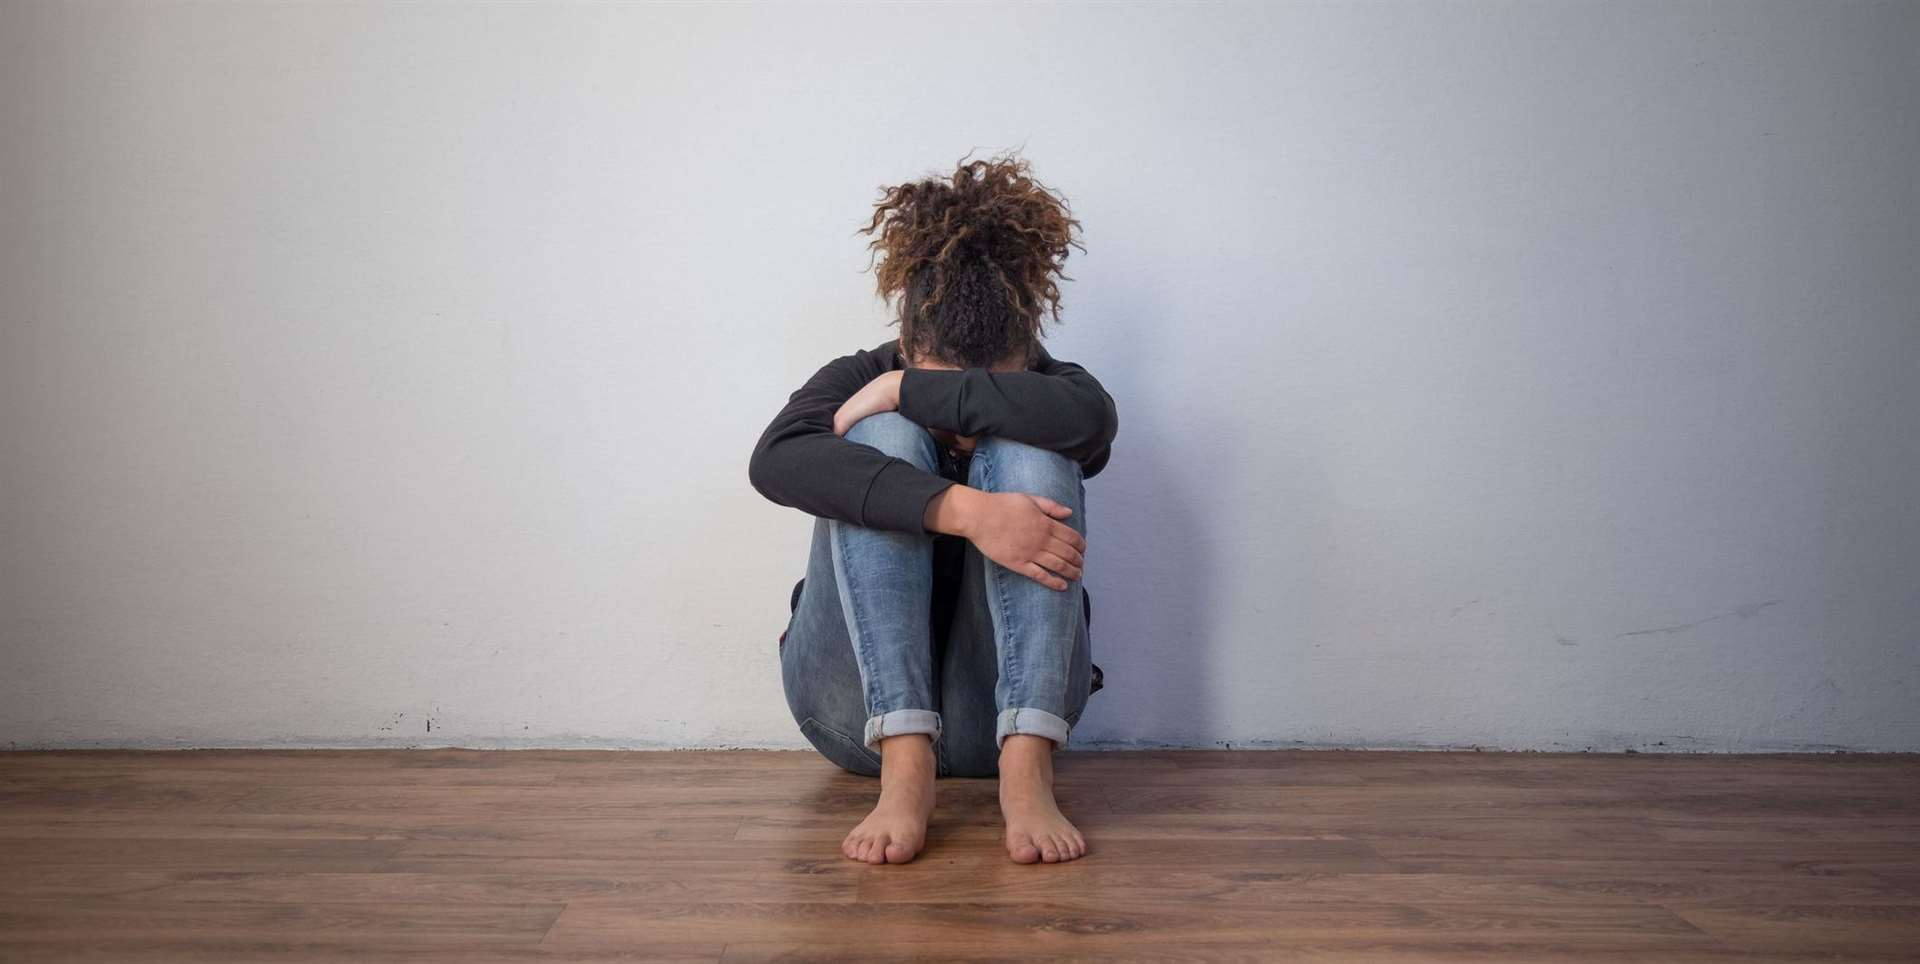 Teenagers and young adults are also feeling lonely. The Office for National Statistics has reported that 11% of 10 to 15-year-olds say they often feel lonely.